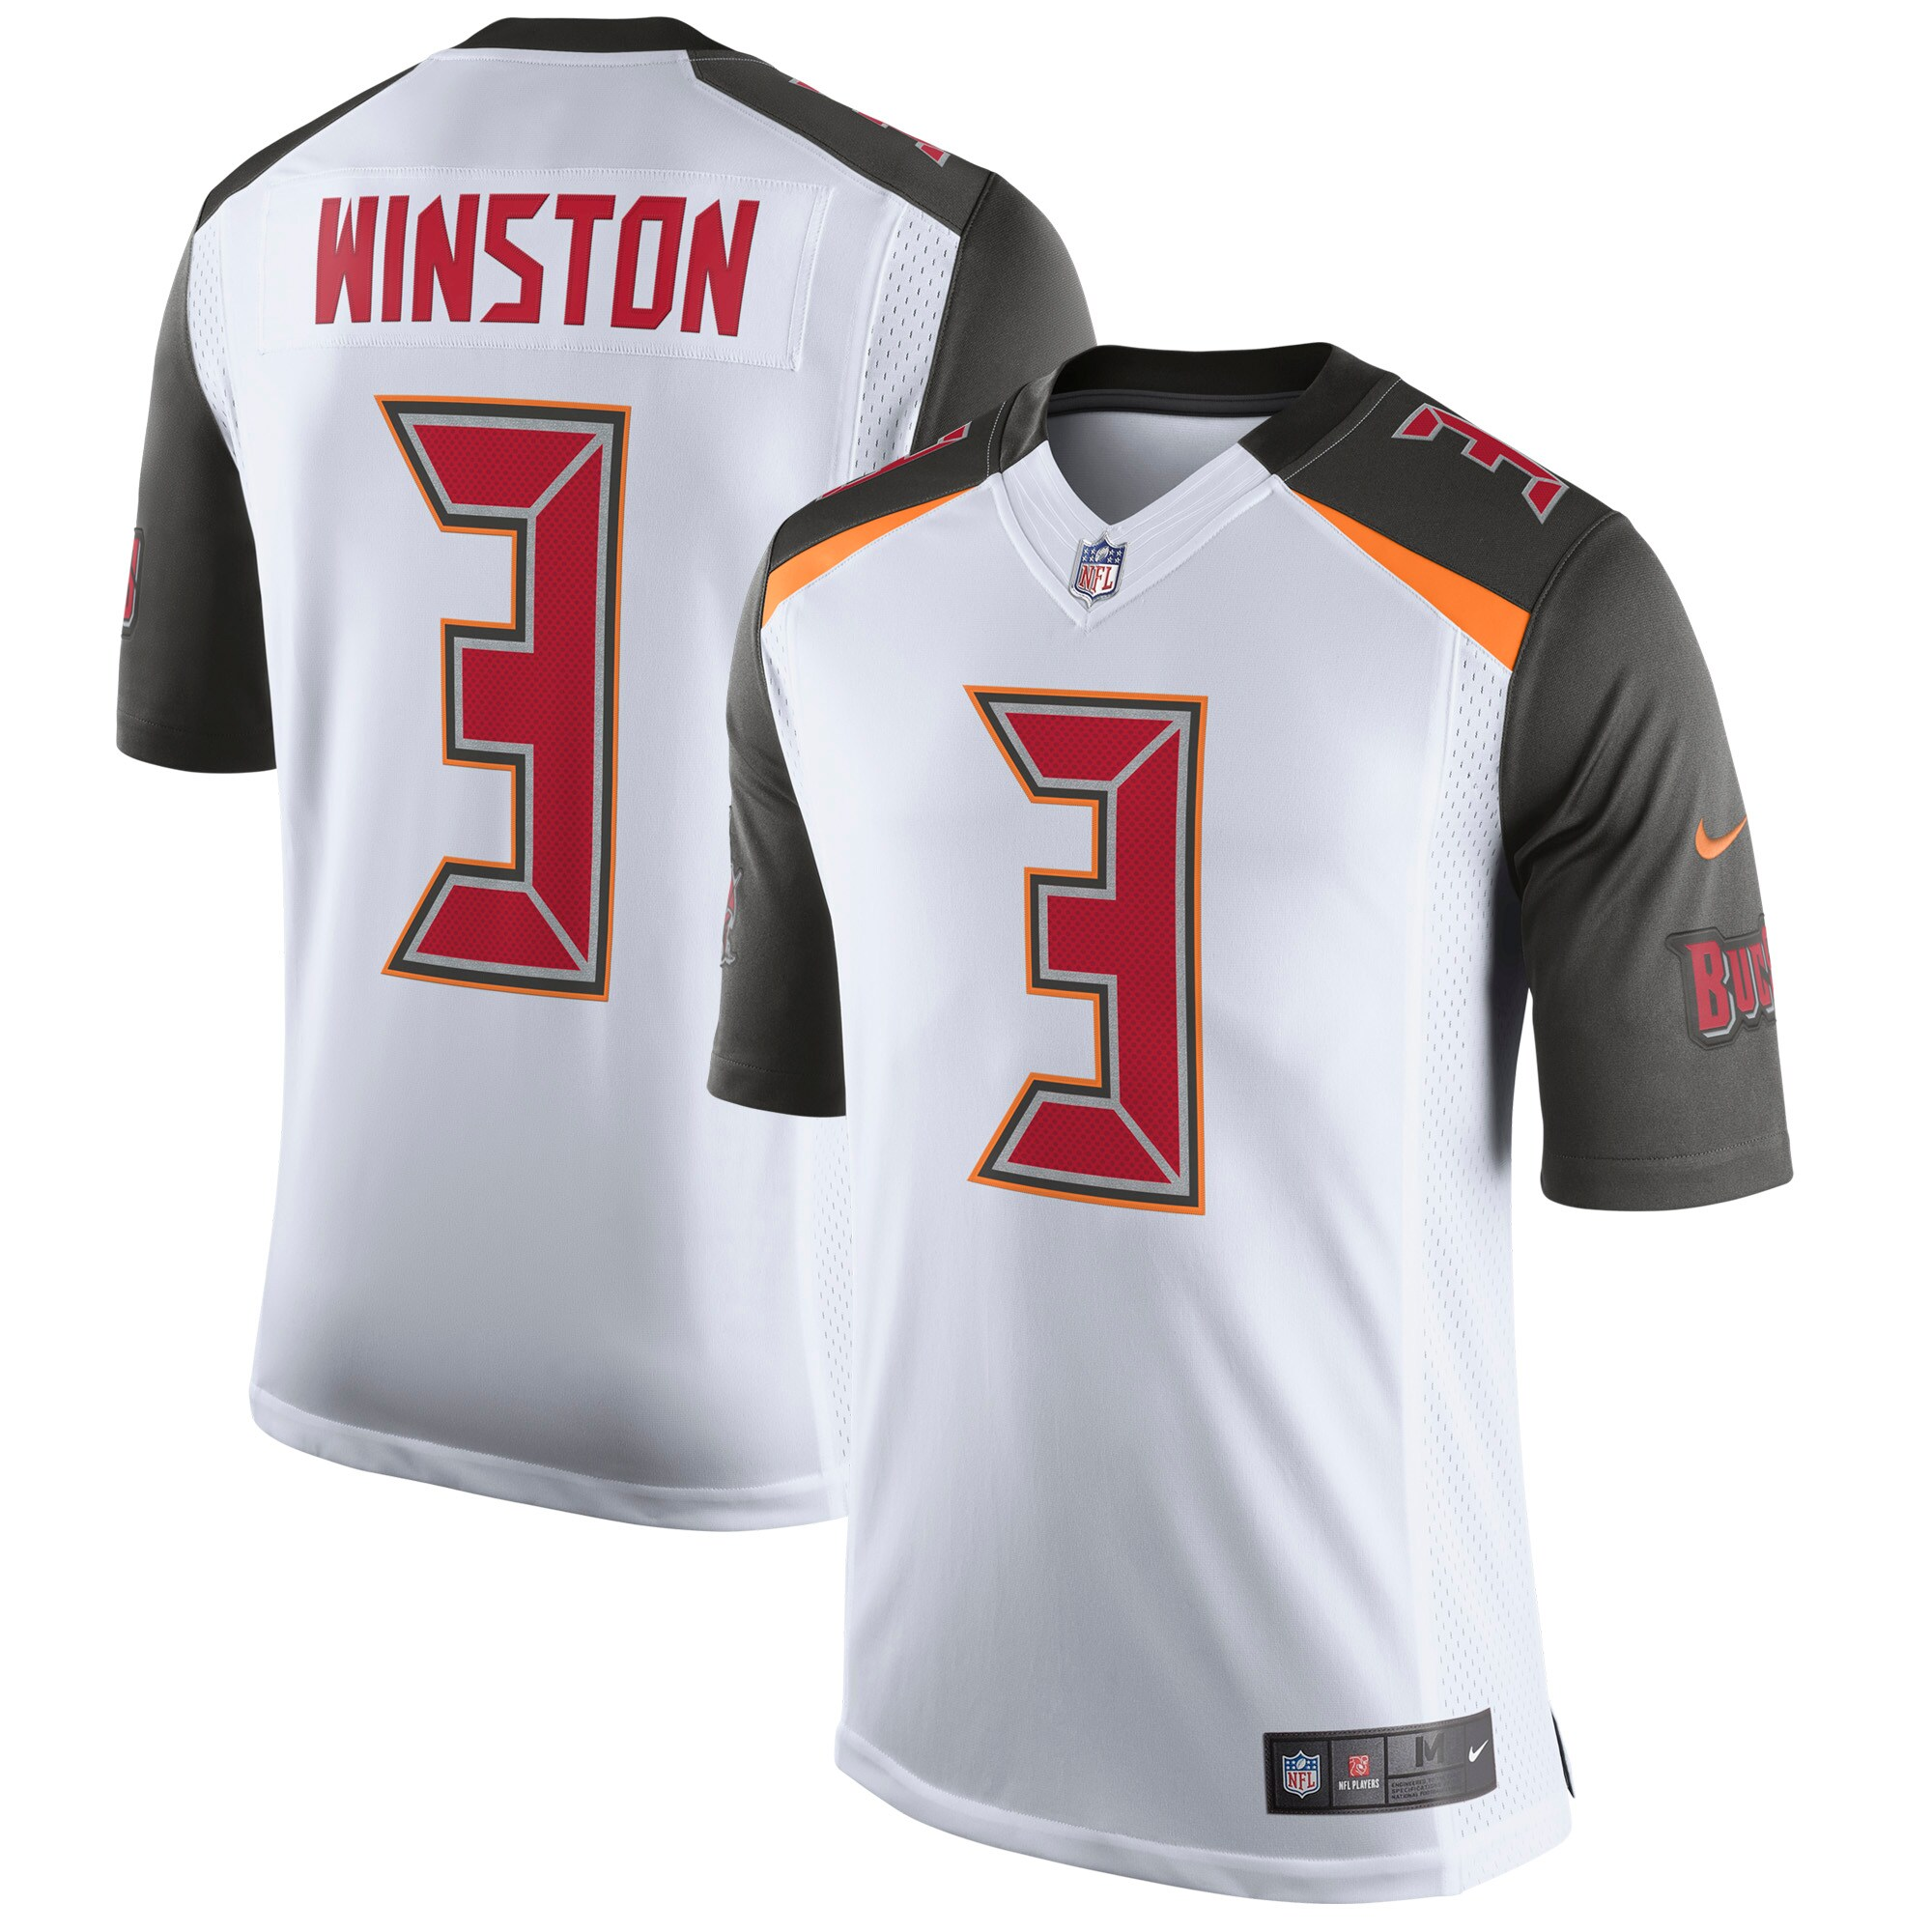 Jameis Winston Tampa Bay Buccaneers Nike Speed Machine Limited Player Jersey - White